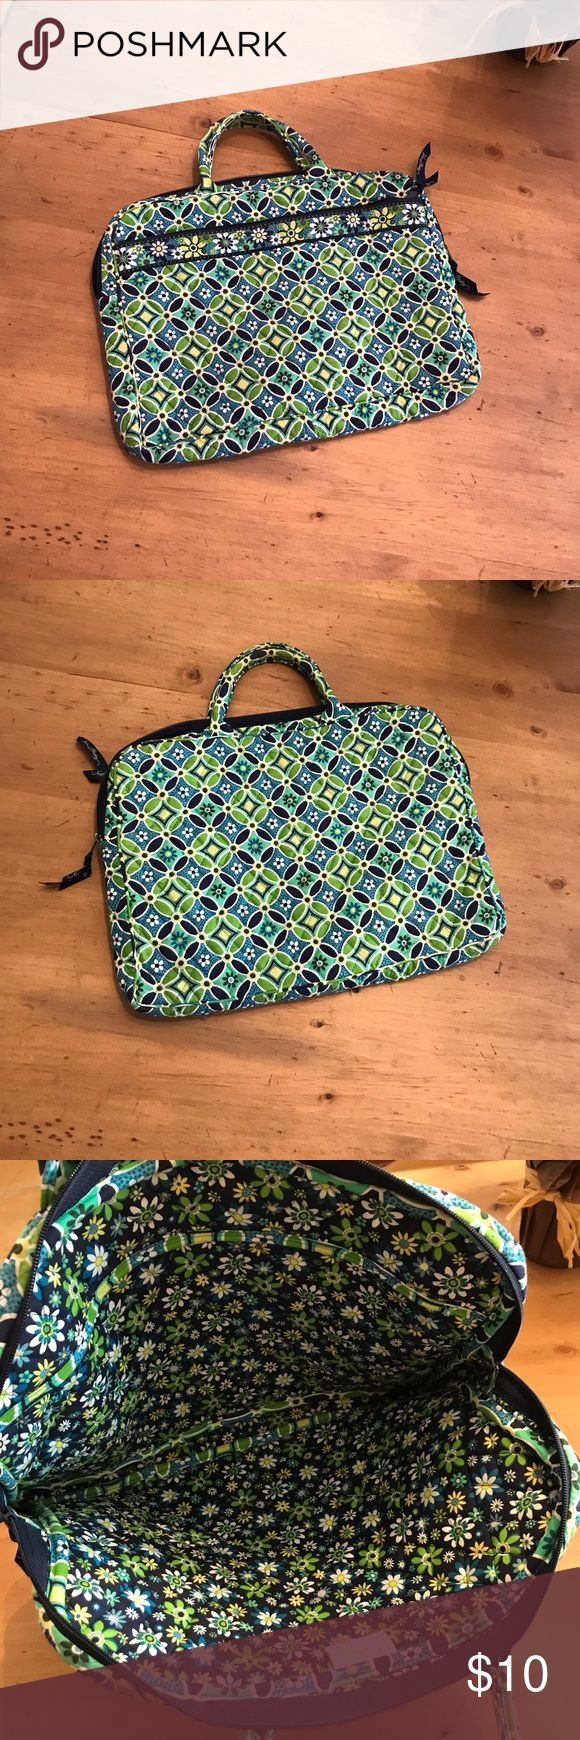 VERA BRADLEY Laptop Bag Gently loved — has been cleaned.  Fits standard size laptops.    ⭐️Please feel free to ask additional questions but no modeling, measurements, or trades.⭐️ Vera Bradley Bags